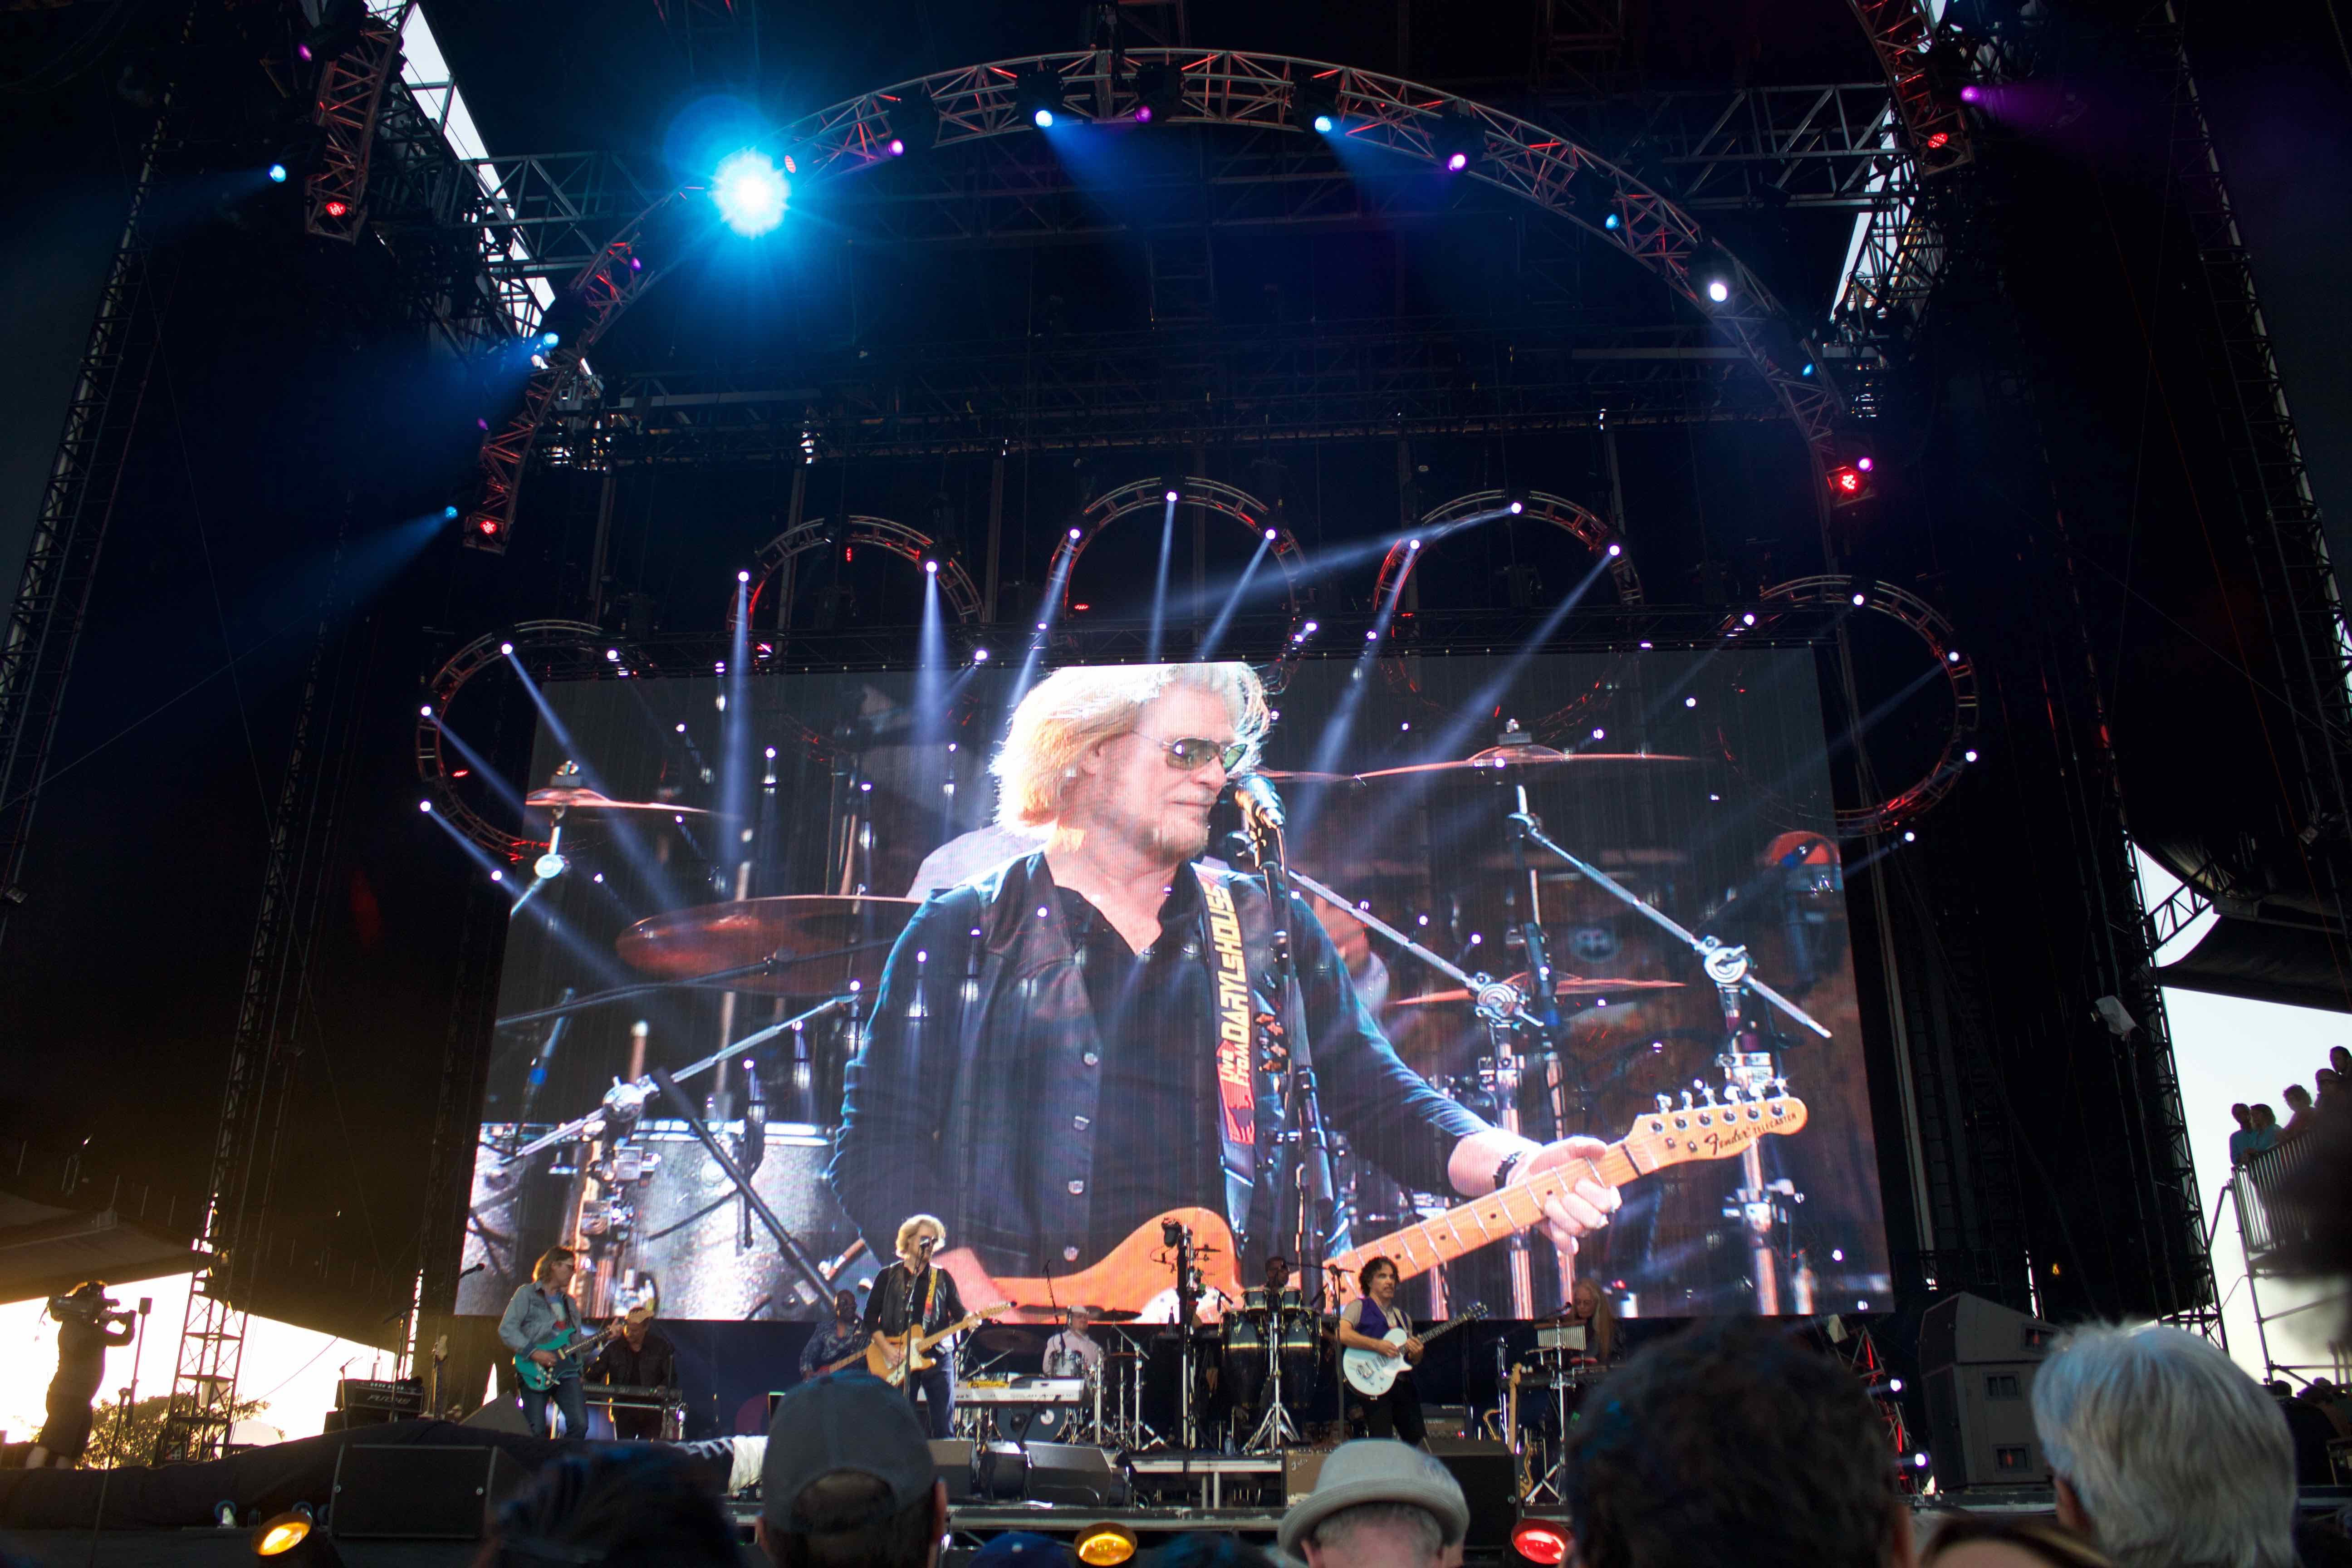 Daryl Hall & John Oates at KAABOO 2016, September 16th. Photo by Derrick K. Lee, Esq. (@Methodman13) for www.BlurredCulture.com.